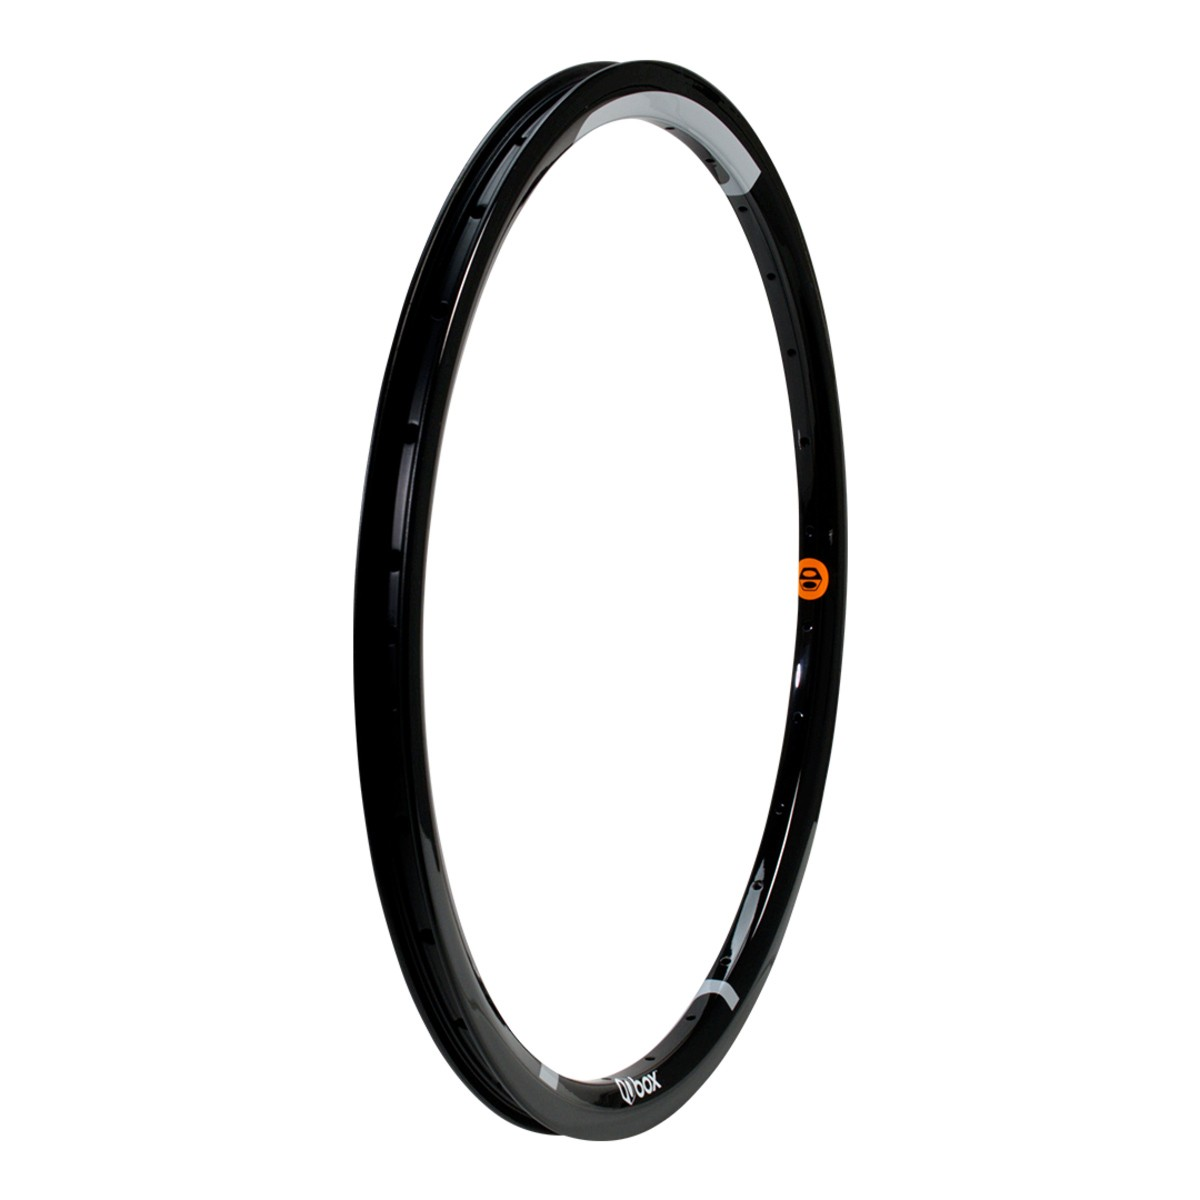 box-one-carbon-451mm-28h-rim-no-brake-surface